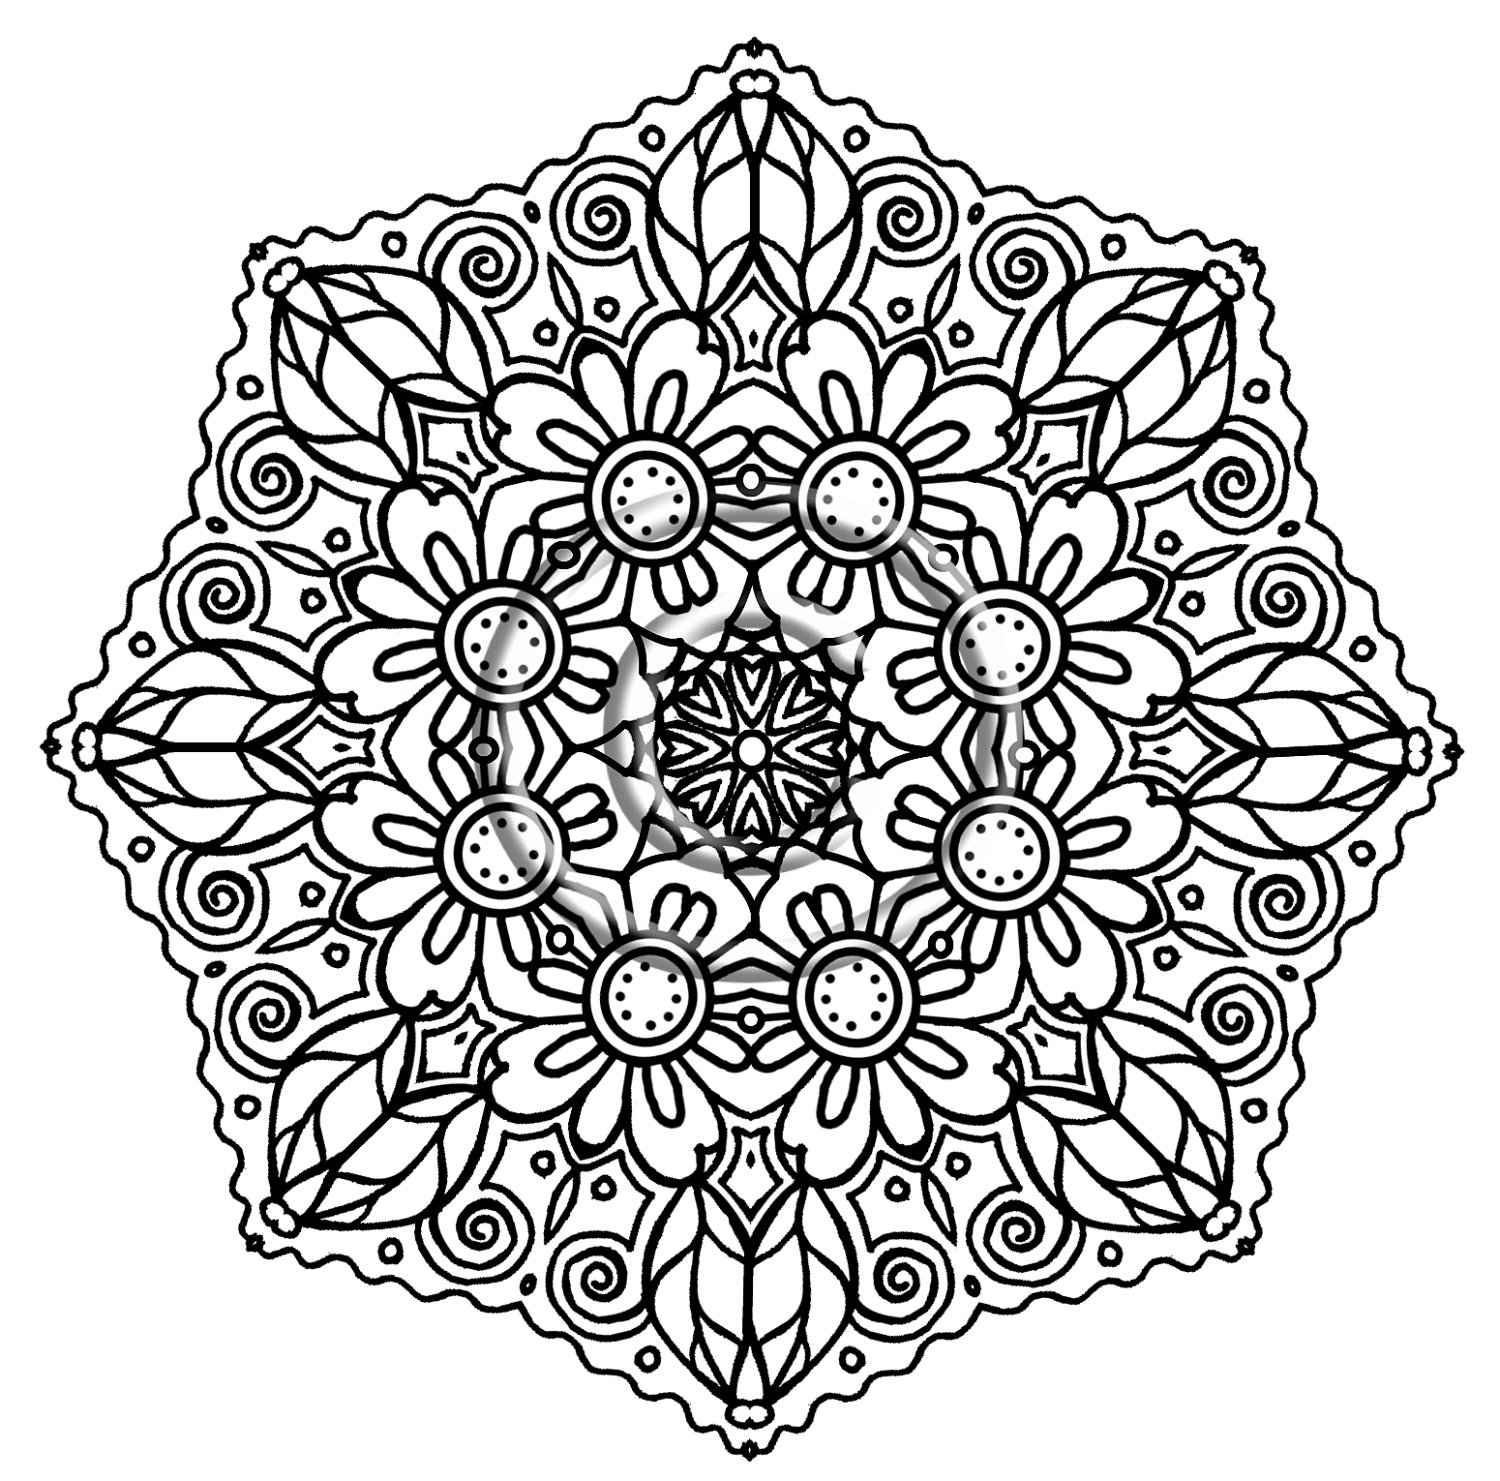 coloring pages for adults to print flowers get the coloring page flowers free coloring pages for print to adults coloring pages for flowers